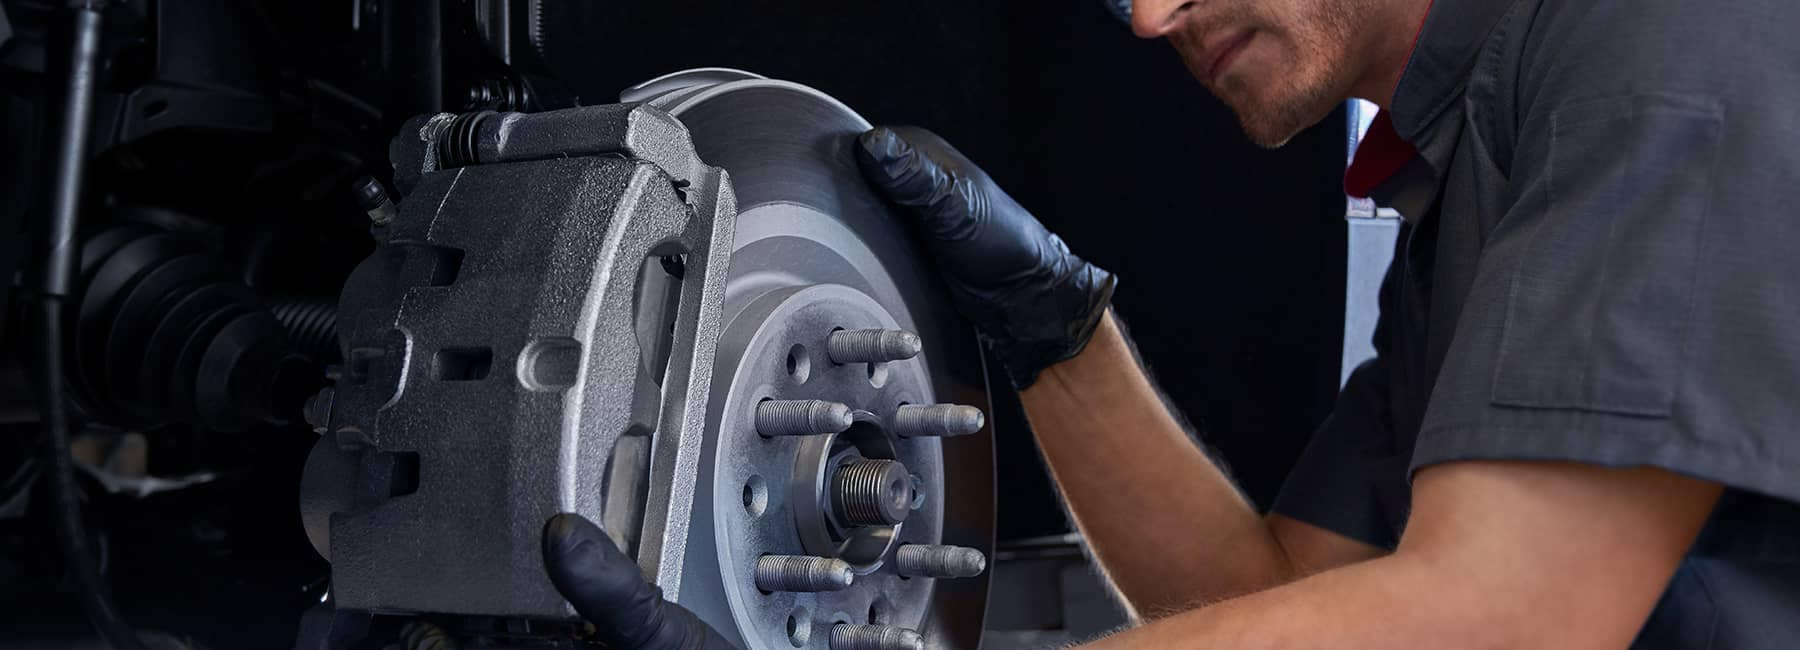 Cadillac Brakes being changed